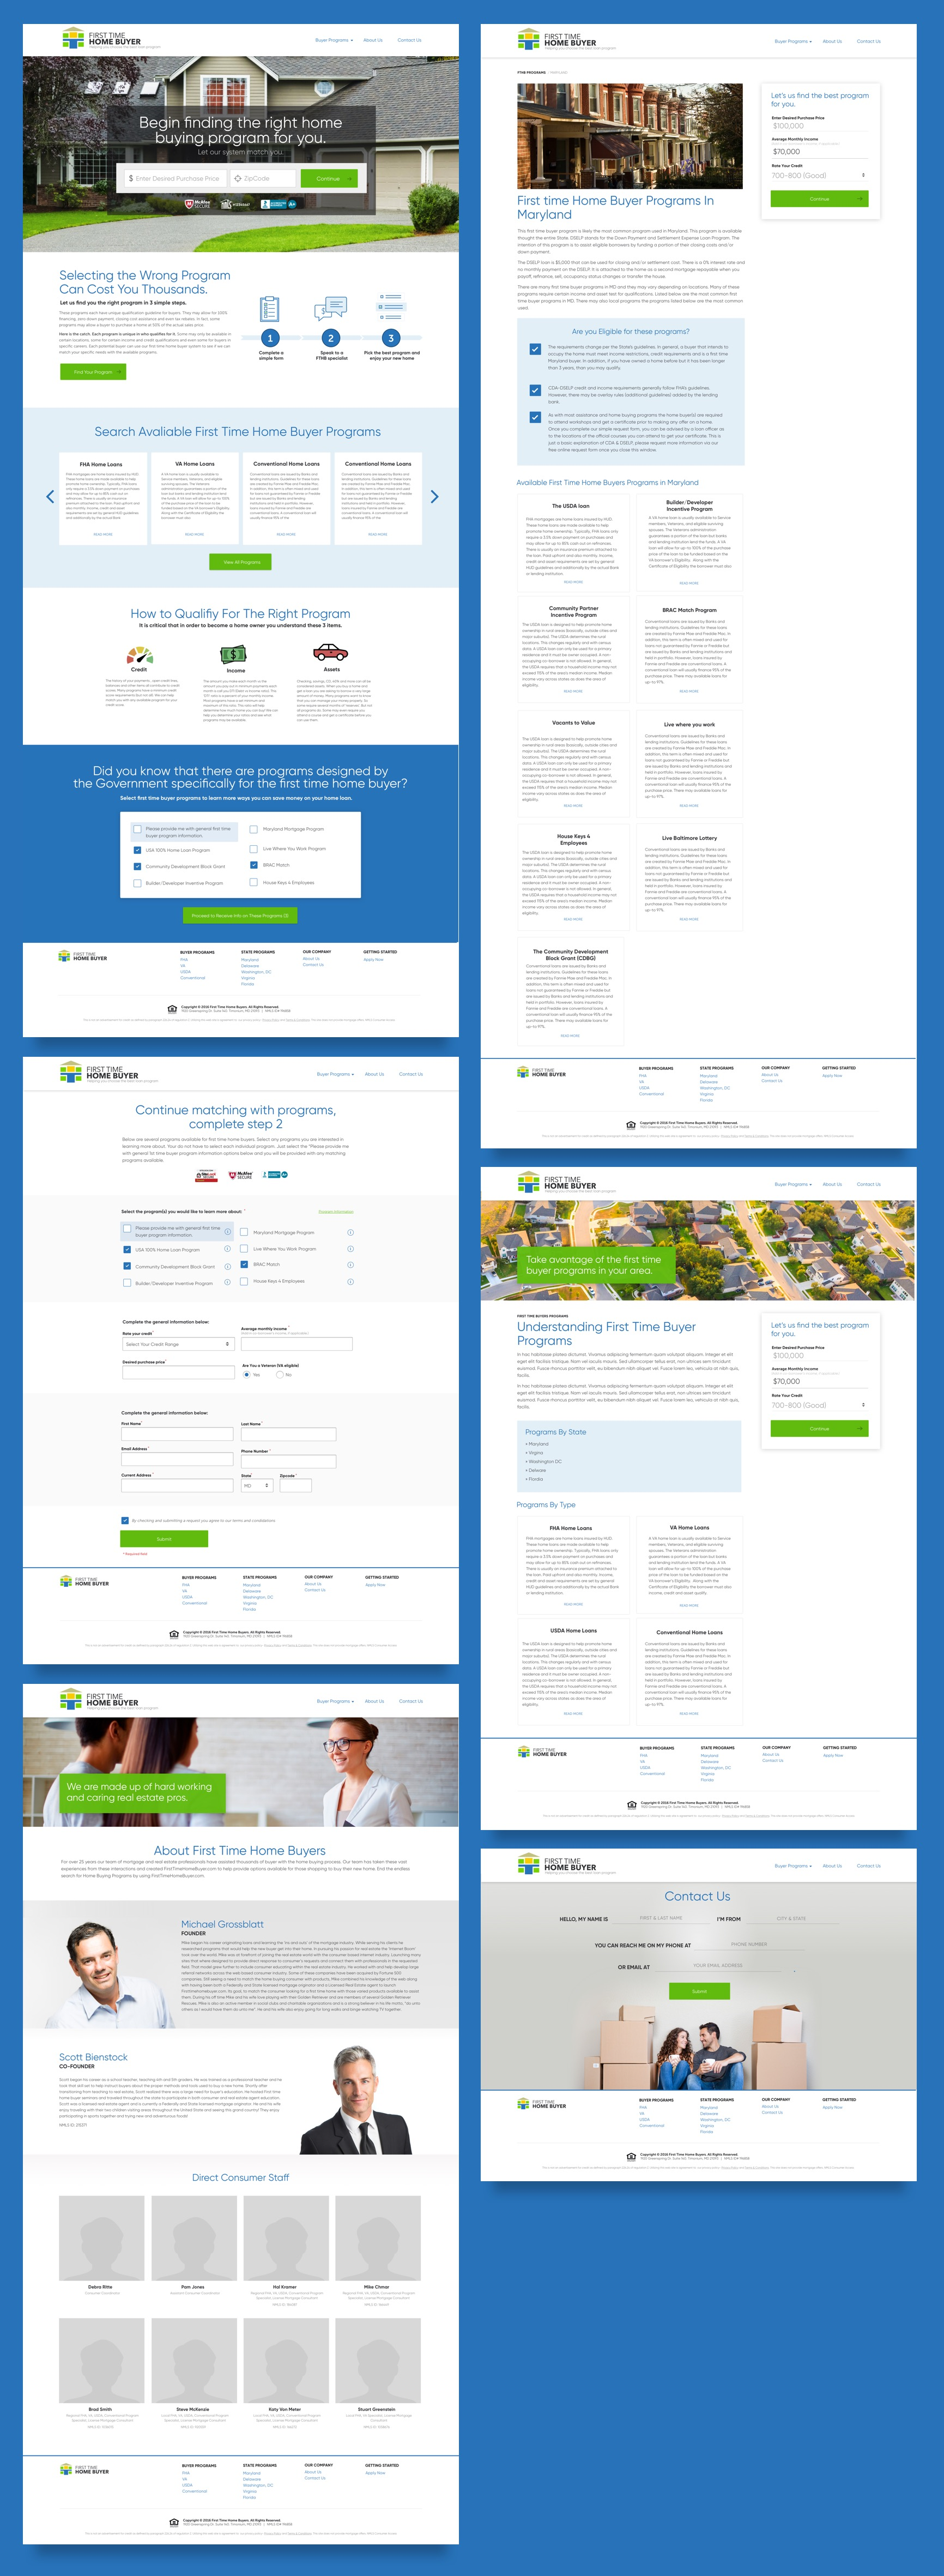 Screenshots of the First Time Home Buyers website.